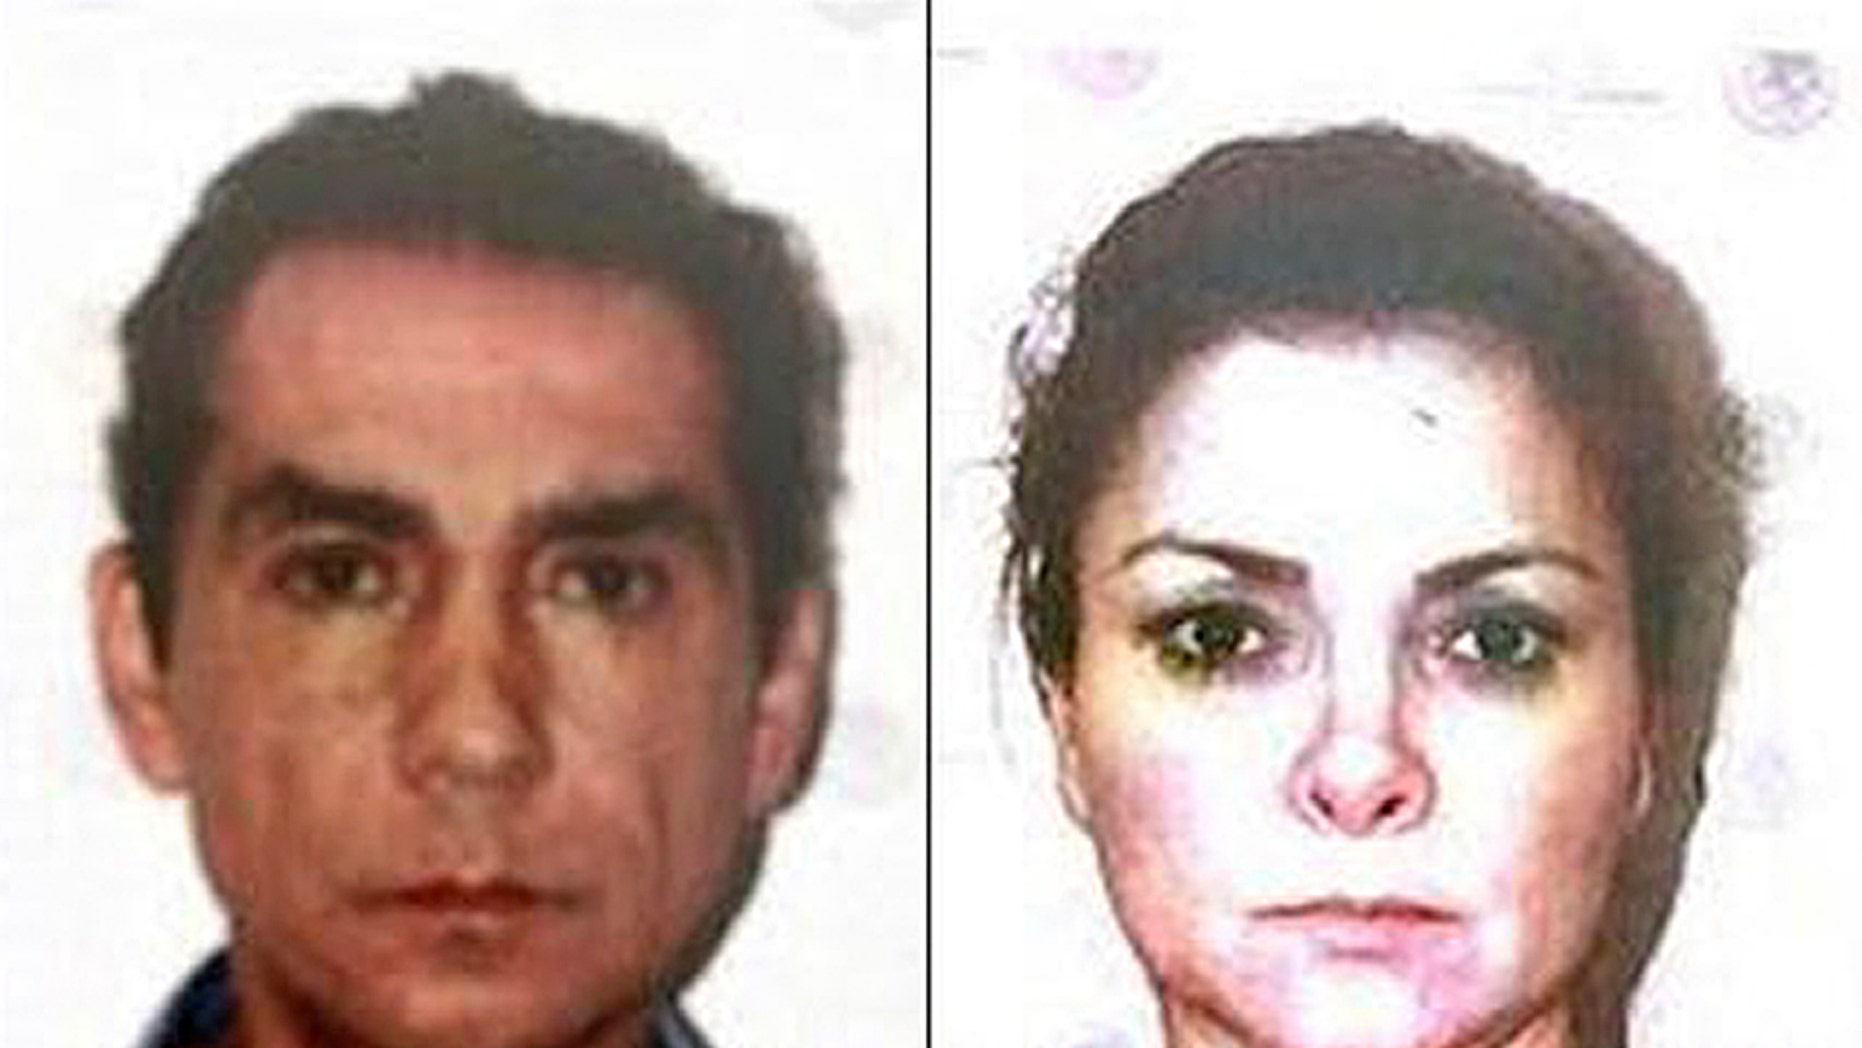 FILE - In this Nov. 5, 2014, two-image composite file photo, released by Mexico's Attorney General's office (PGR) shows the former mayor of the town of Iguala, Jose Luis Abarca, left, and his wife, Maria de los Angeles Pineda, after their arrest in Mexico City. The federal judiciary council said on Monday, Jan. 12, 2014, that a court ruled there was enough evidence to try Maria de los Angeles Pineda on charges she engaged in organized crime to traffic drugs and launder money. (AP Photo/PGR, File)